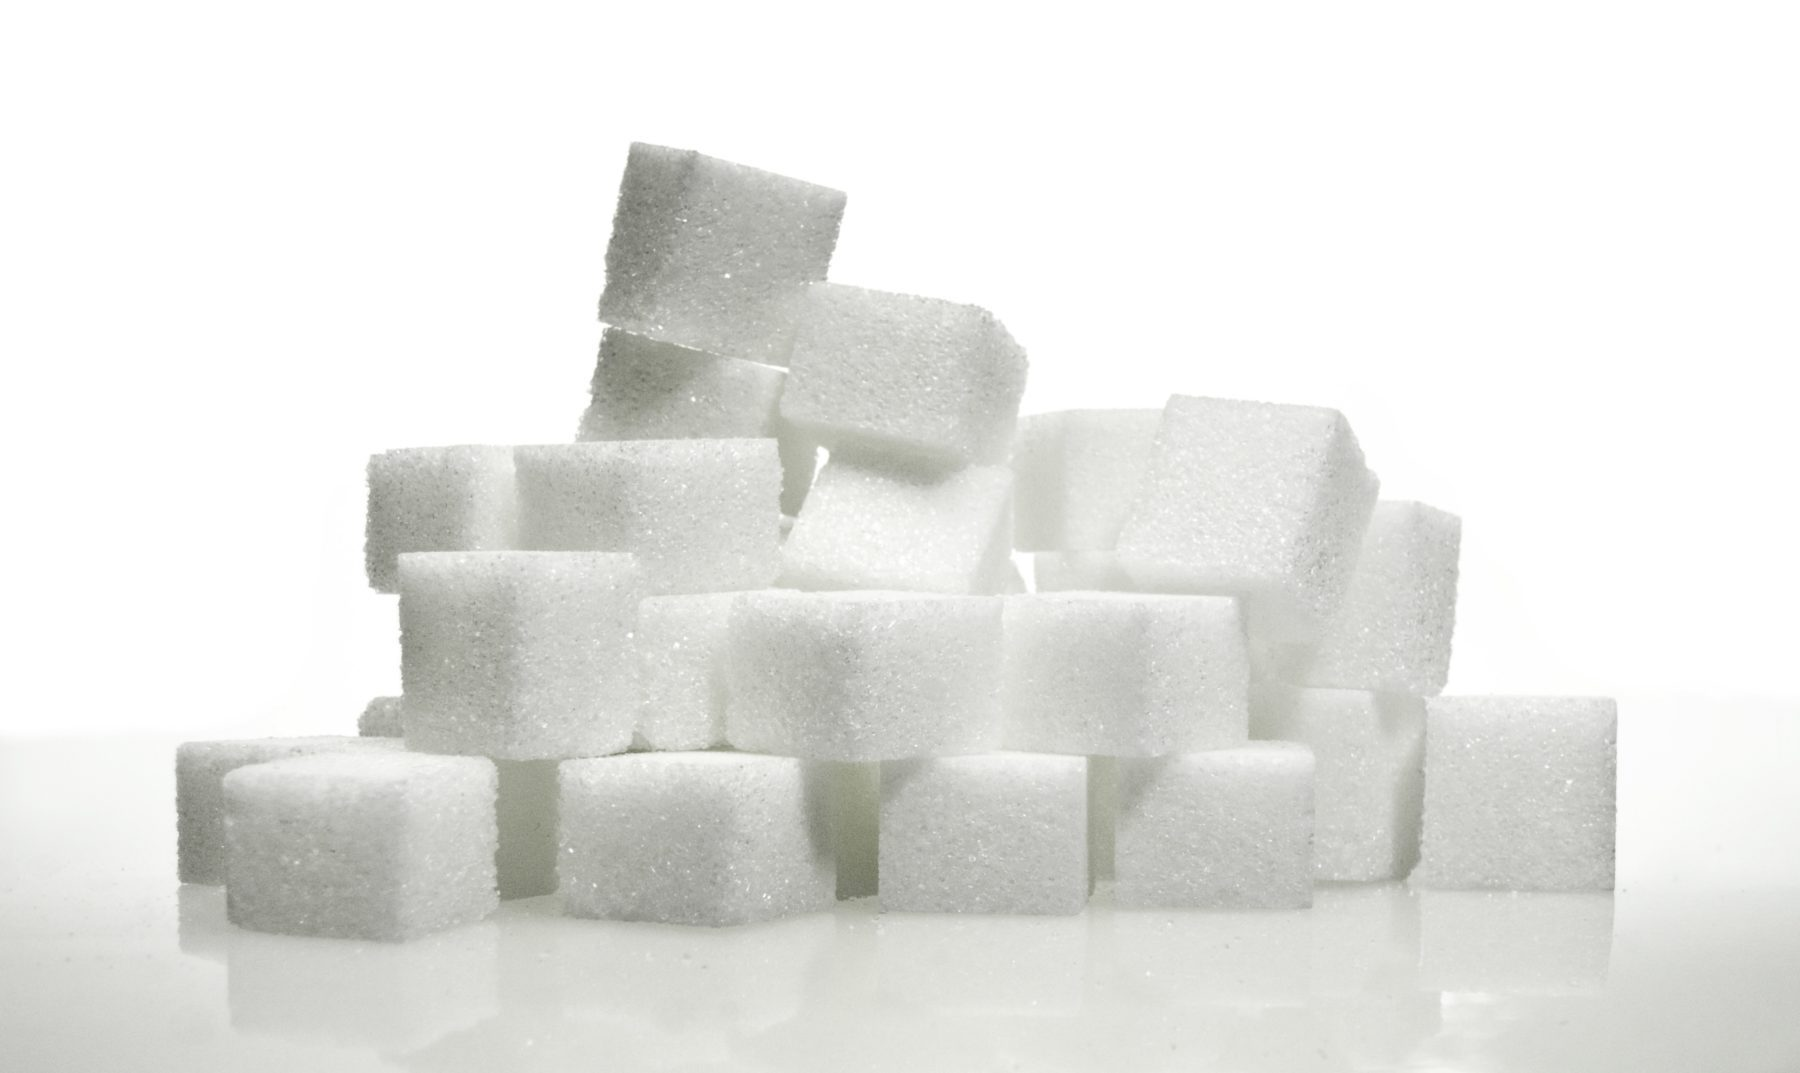 How can I become Sugar Free in 5 weeks?